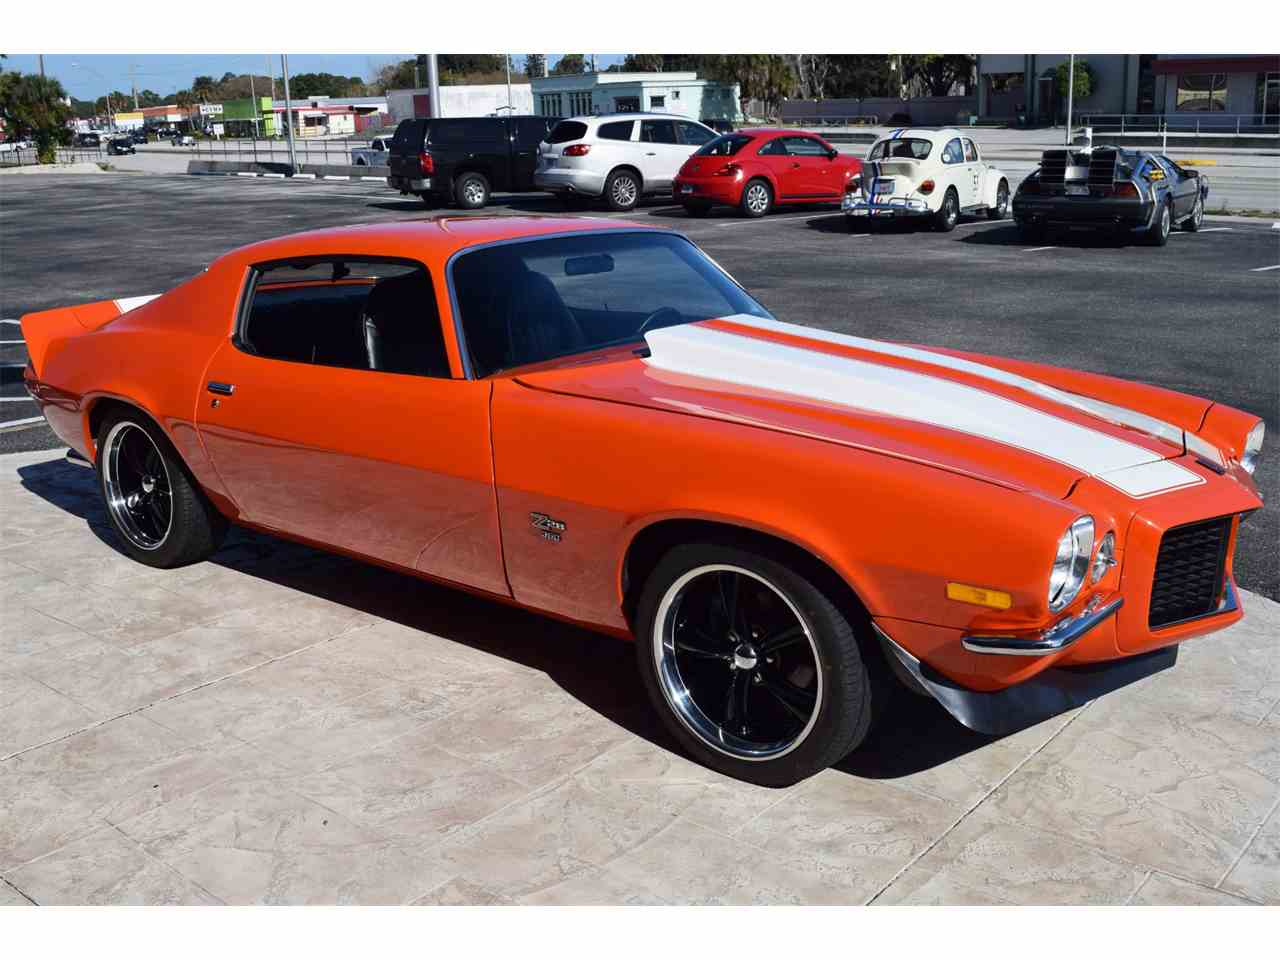 Large Picture of 1973 Chevrolet Camaro located in Florida - $39,983.00 Offered by Ideal Classic Cars - LEQE